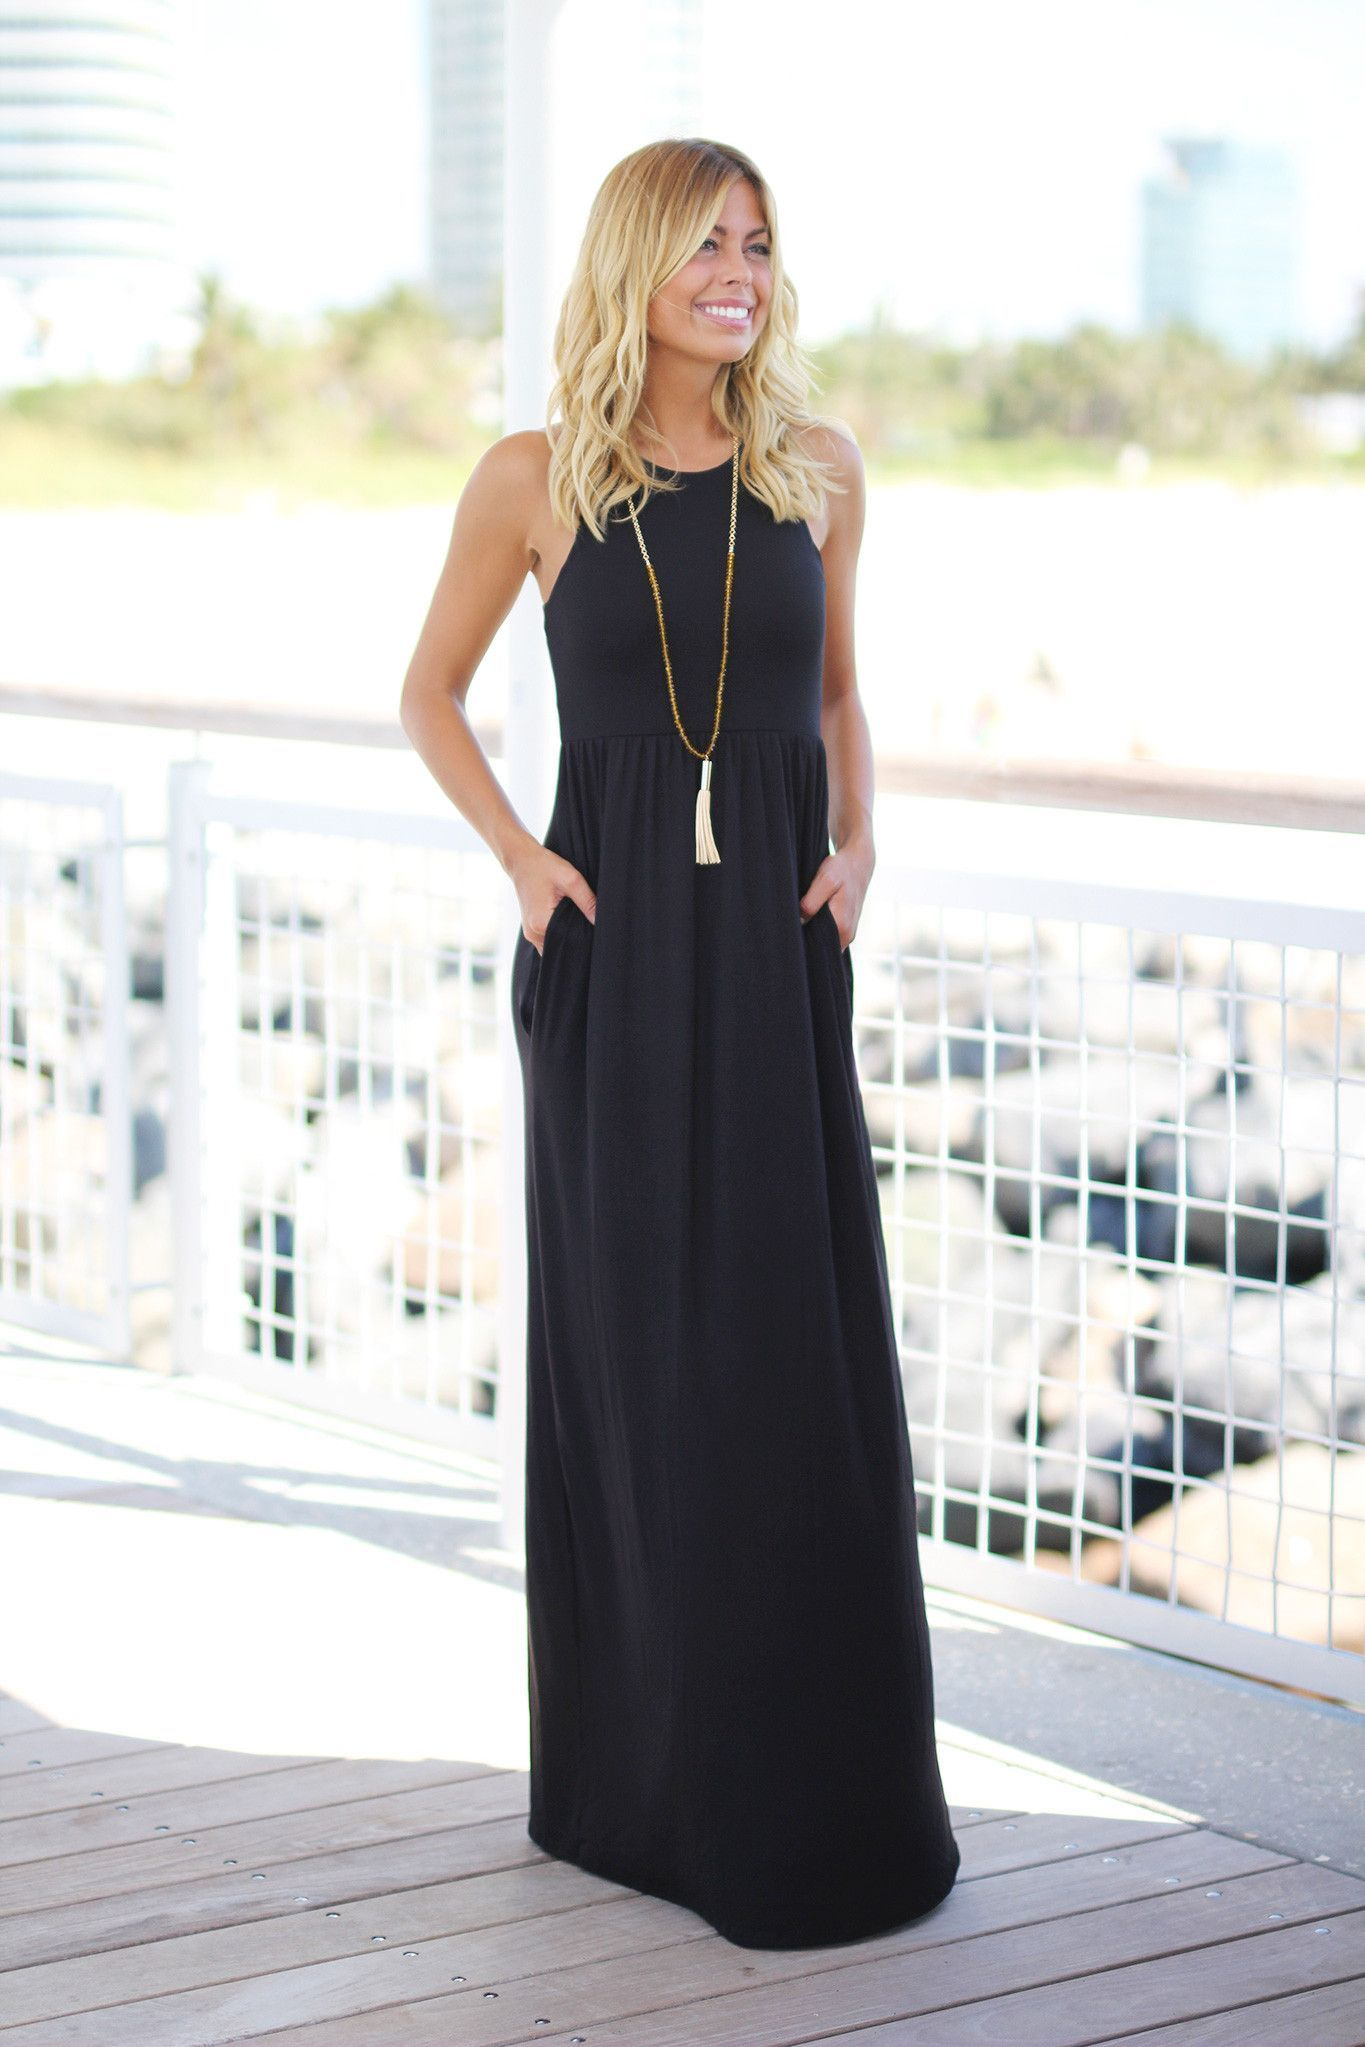 a05397878 Black Maxi Dress with Pockets | Stitch Fix | Stitch fix maxi ...